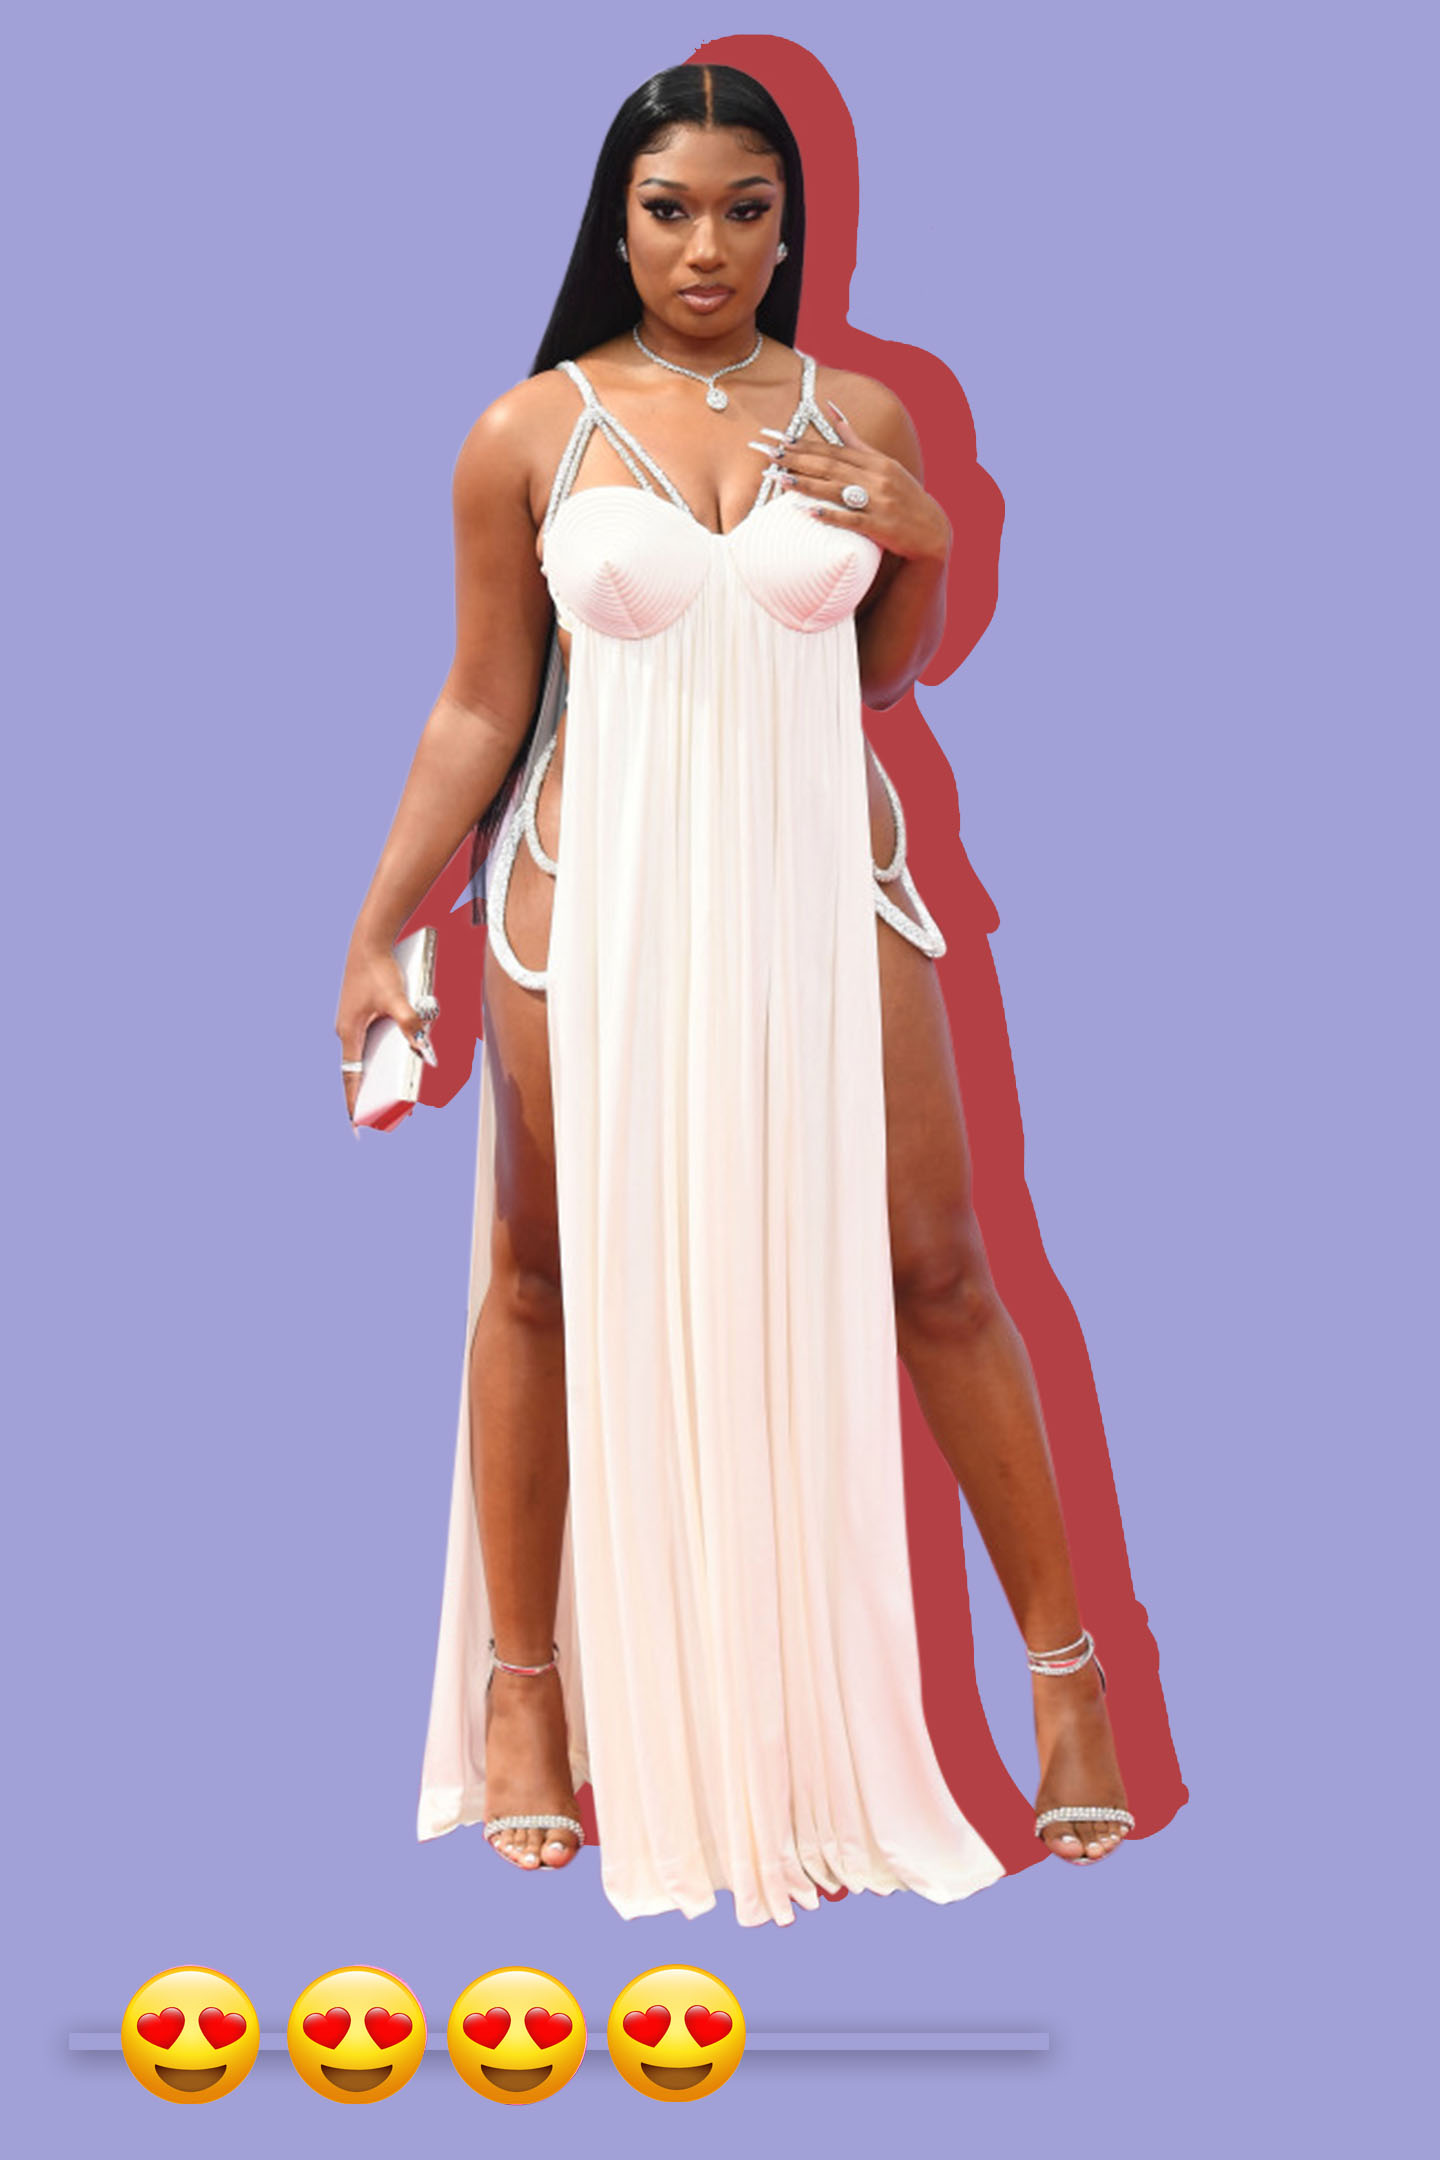 Megan Thee Stallion in Jean Paul Gaultier at the BET Awards.